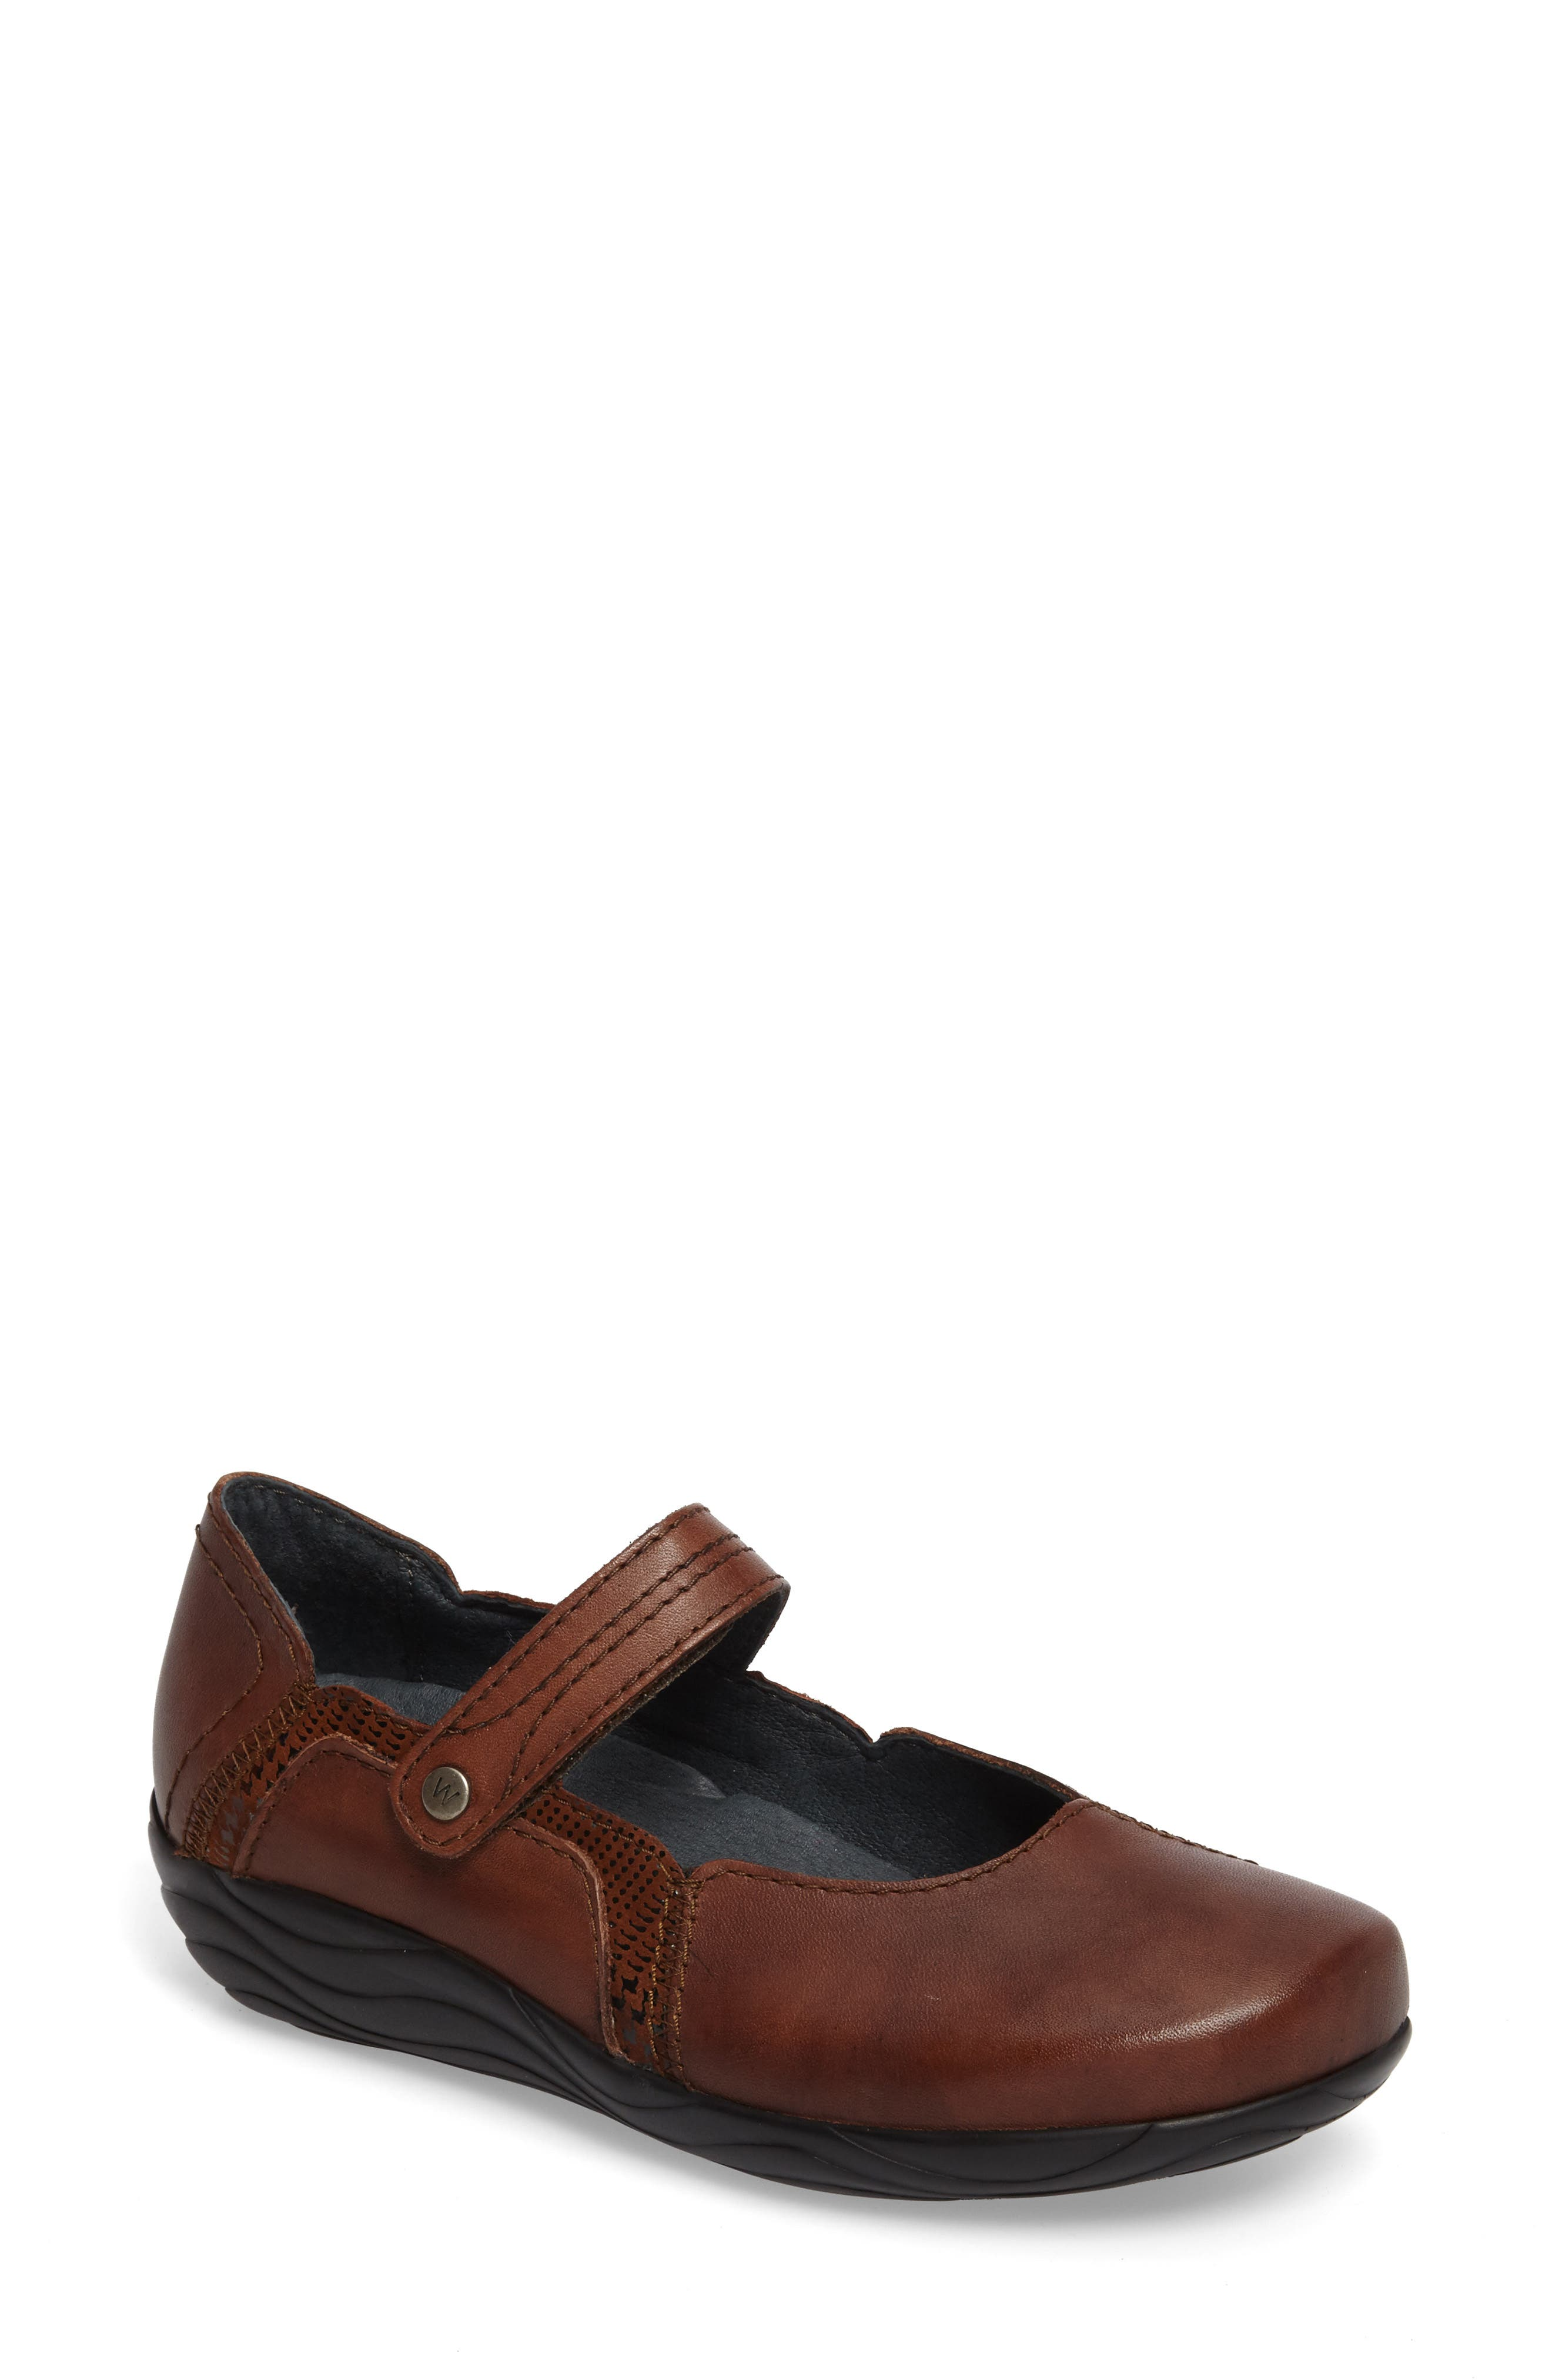 Gila Mary-Jane Flat,                             Main thumbnail 1, color,                             Cognac Leather